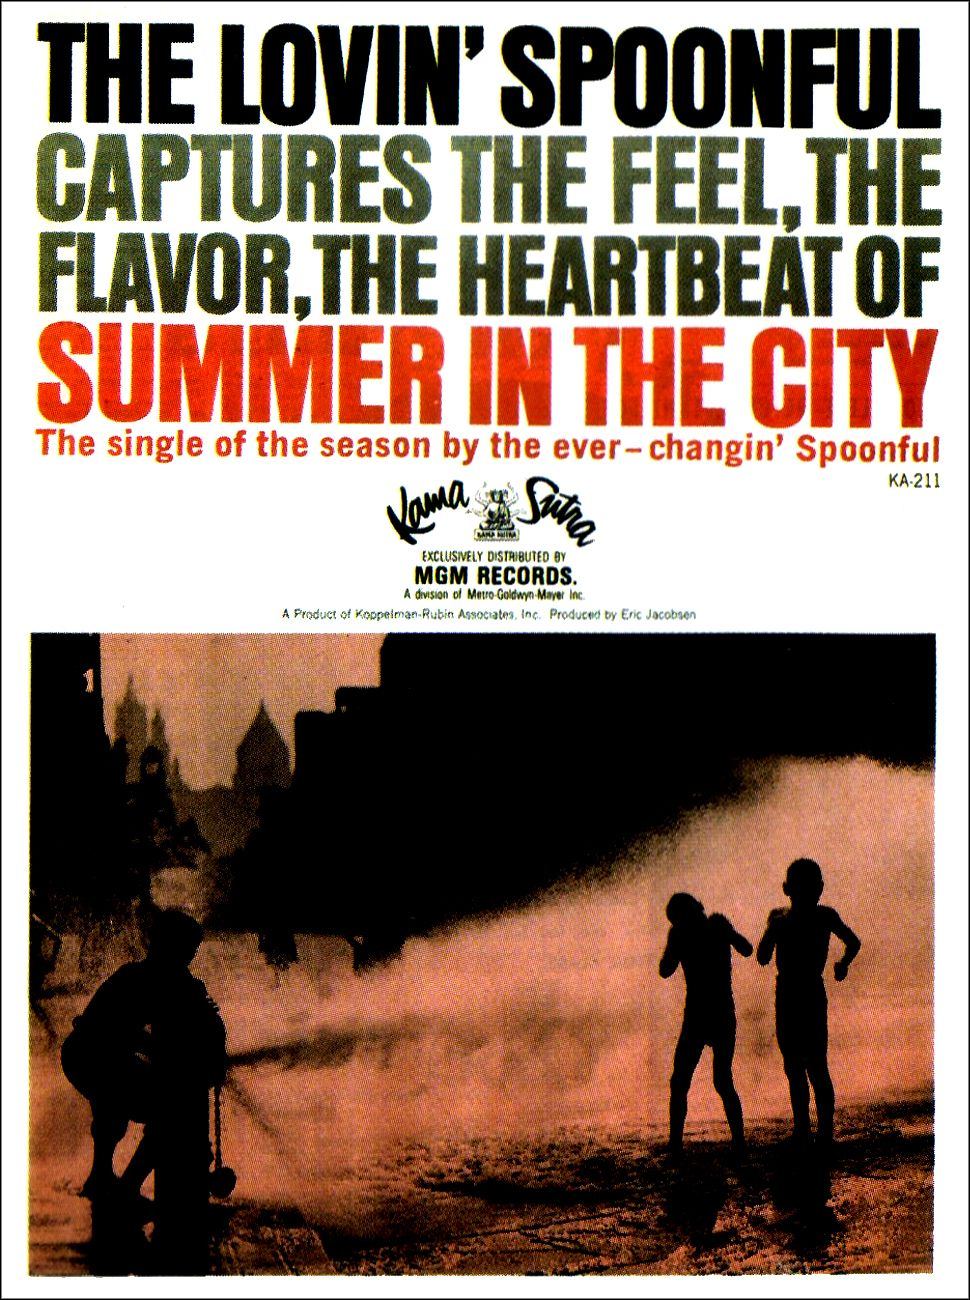 The Lovin Spoonful Summer In The City Ad 1966 Kunstgeschiedenis